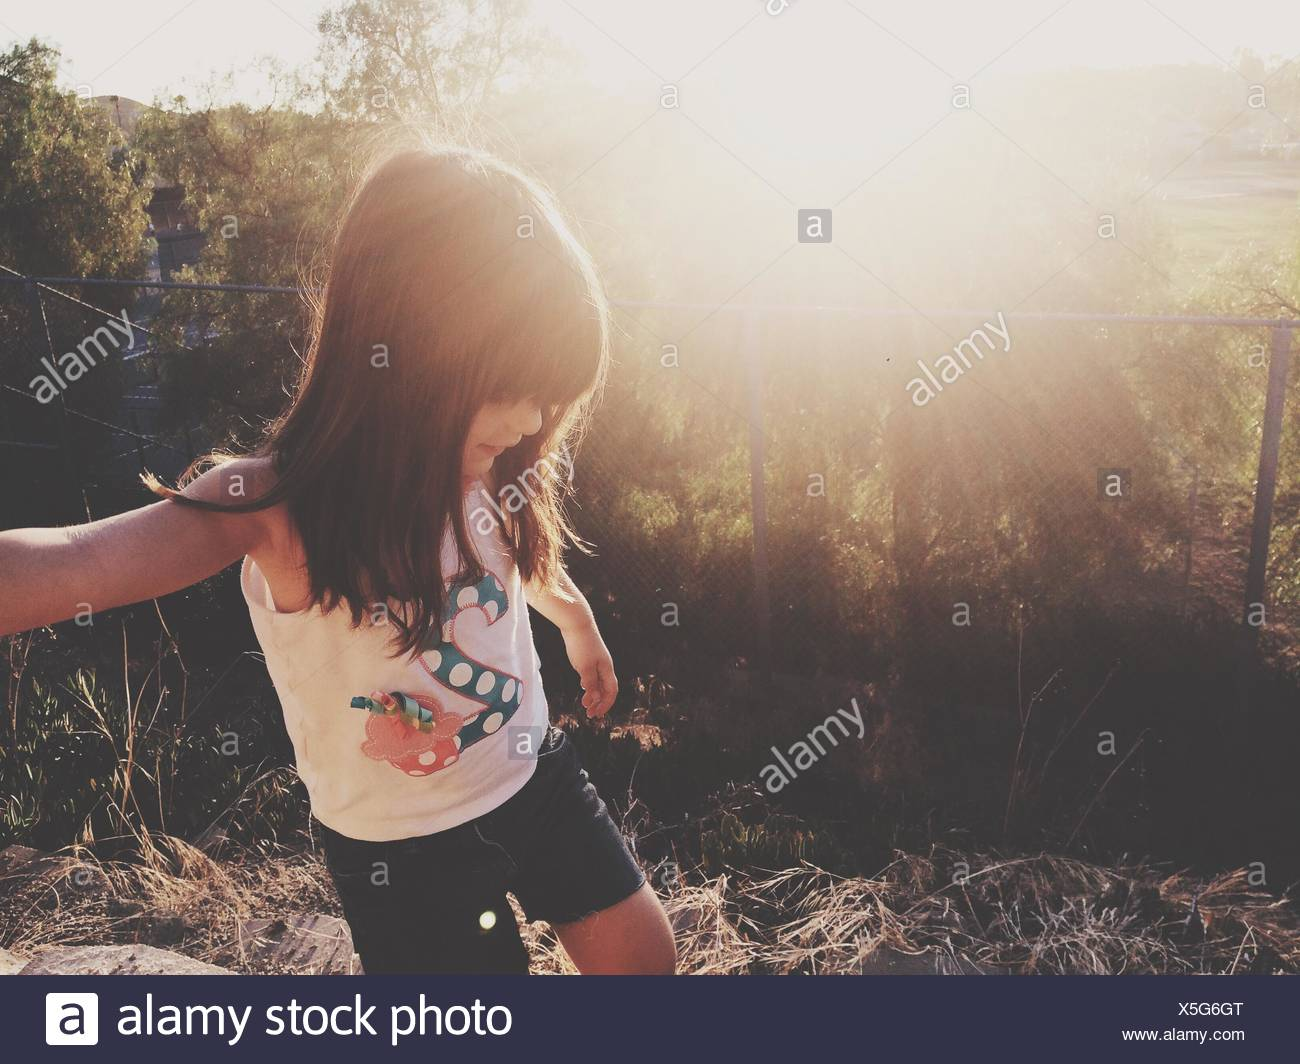 Girl Looking Down on Field Photo Stock